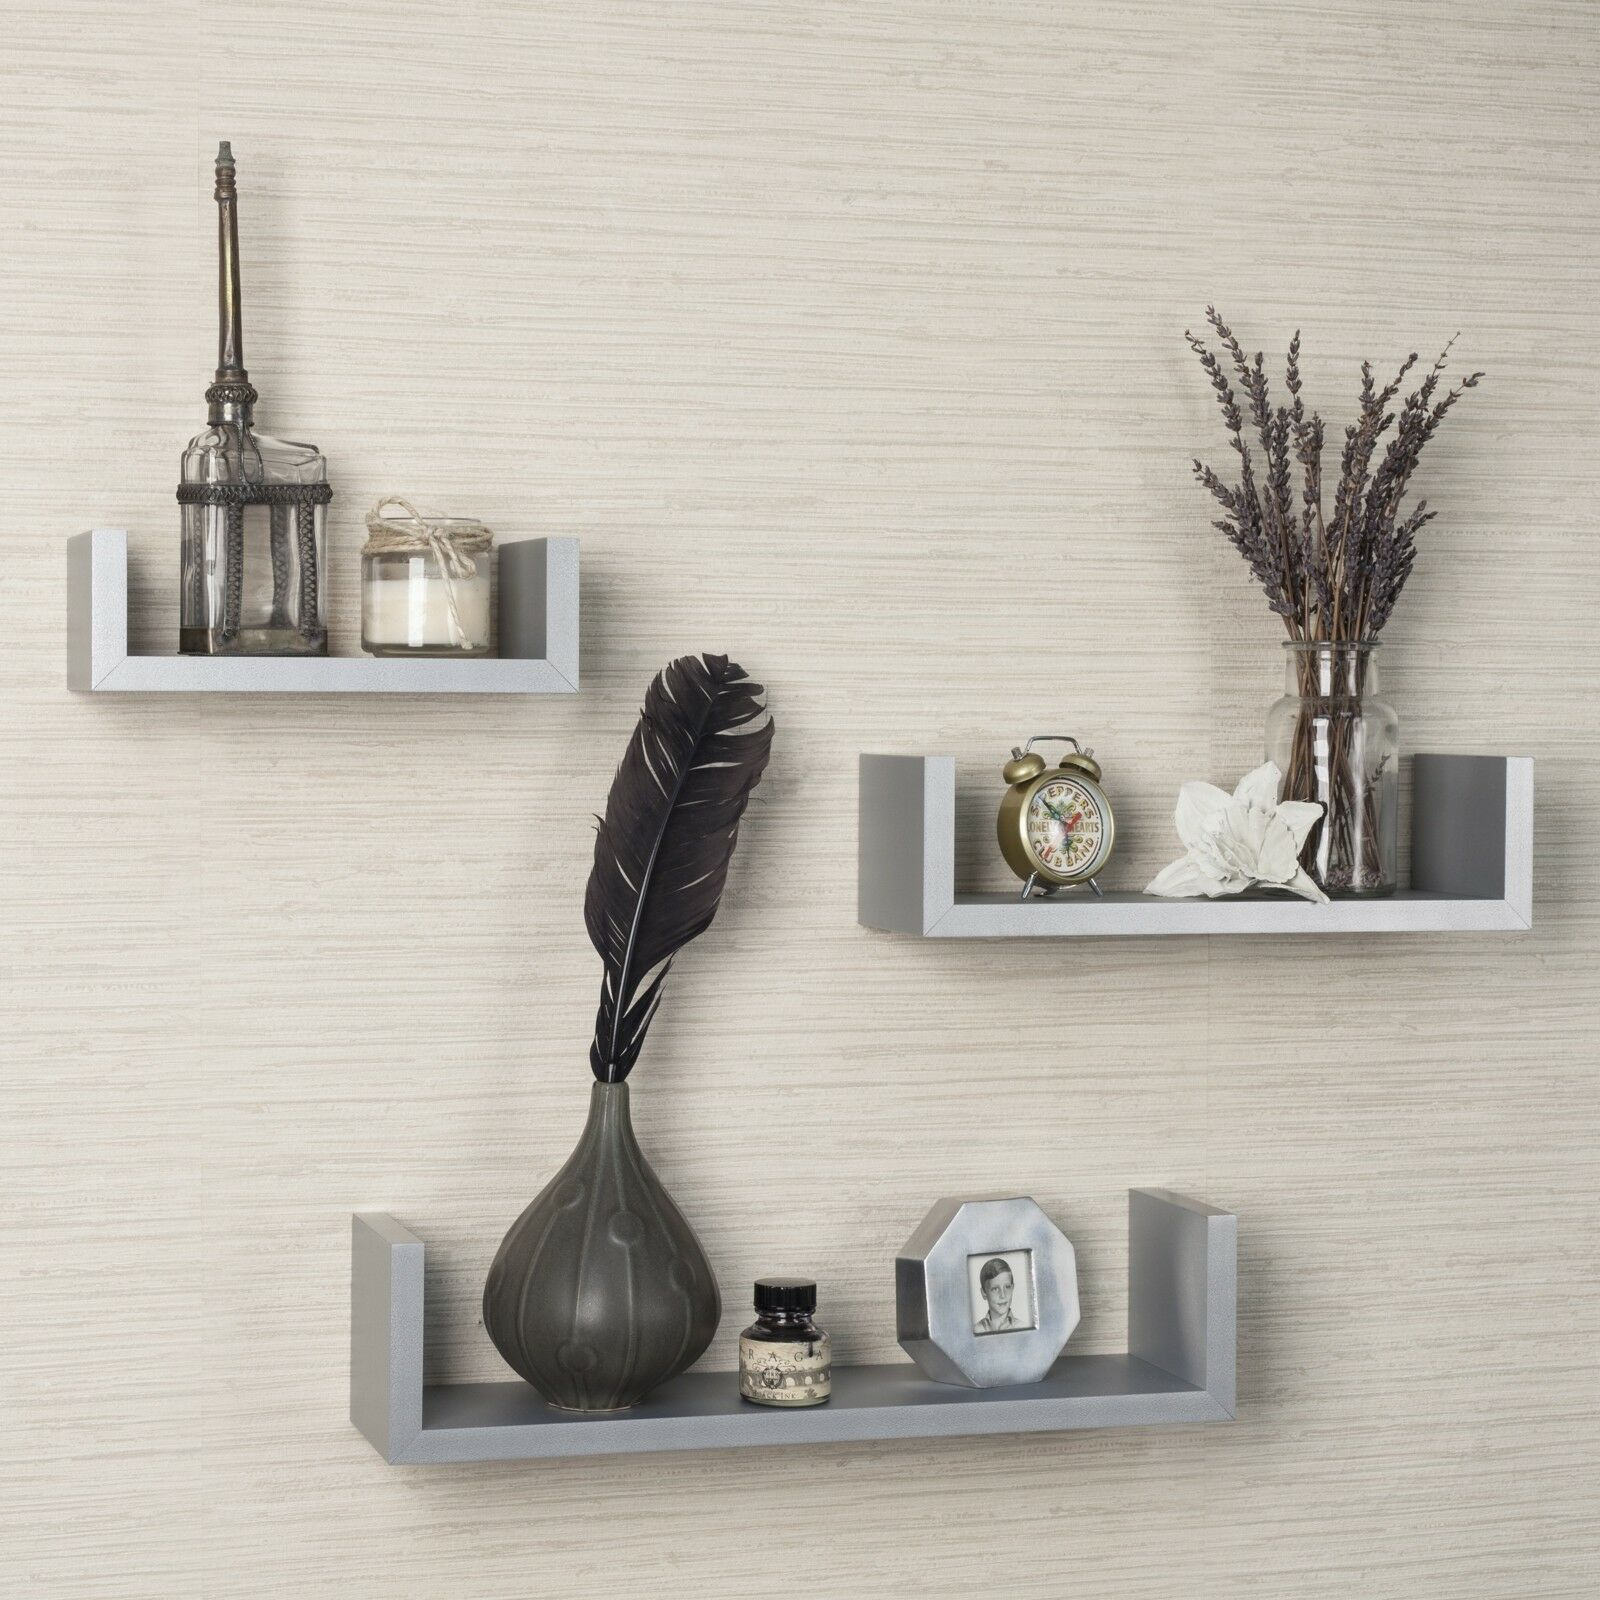 luxury silver floating wall shelves home decor set free shipping portable island self standing coat rack black shoe storage unit canadian tire closet organisers file cabinet